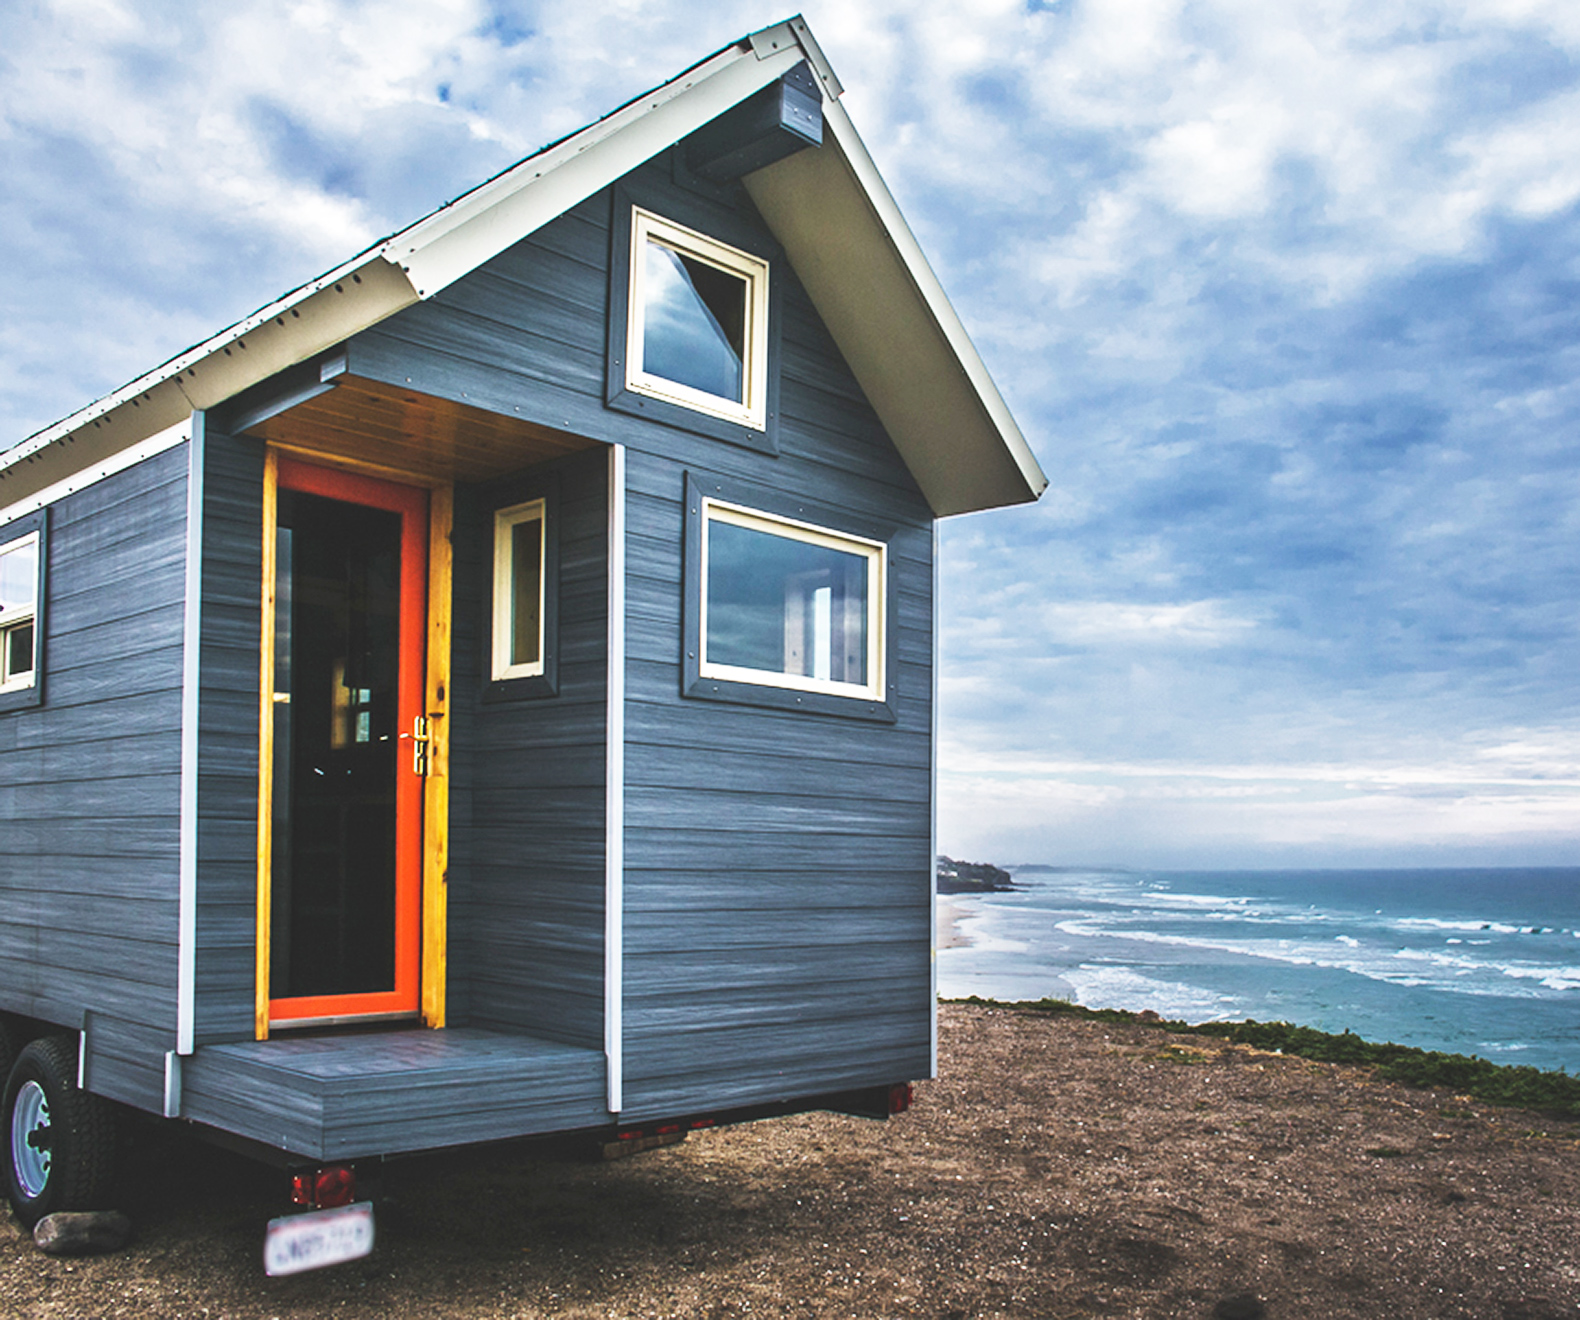 These Super Customizable Monarch Tiny Homes Cost Just $22,000 | Inhabitat    Green Design, Innovation, Architecture, Green Building Part 96